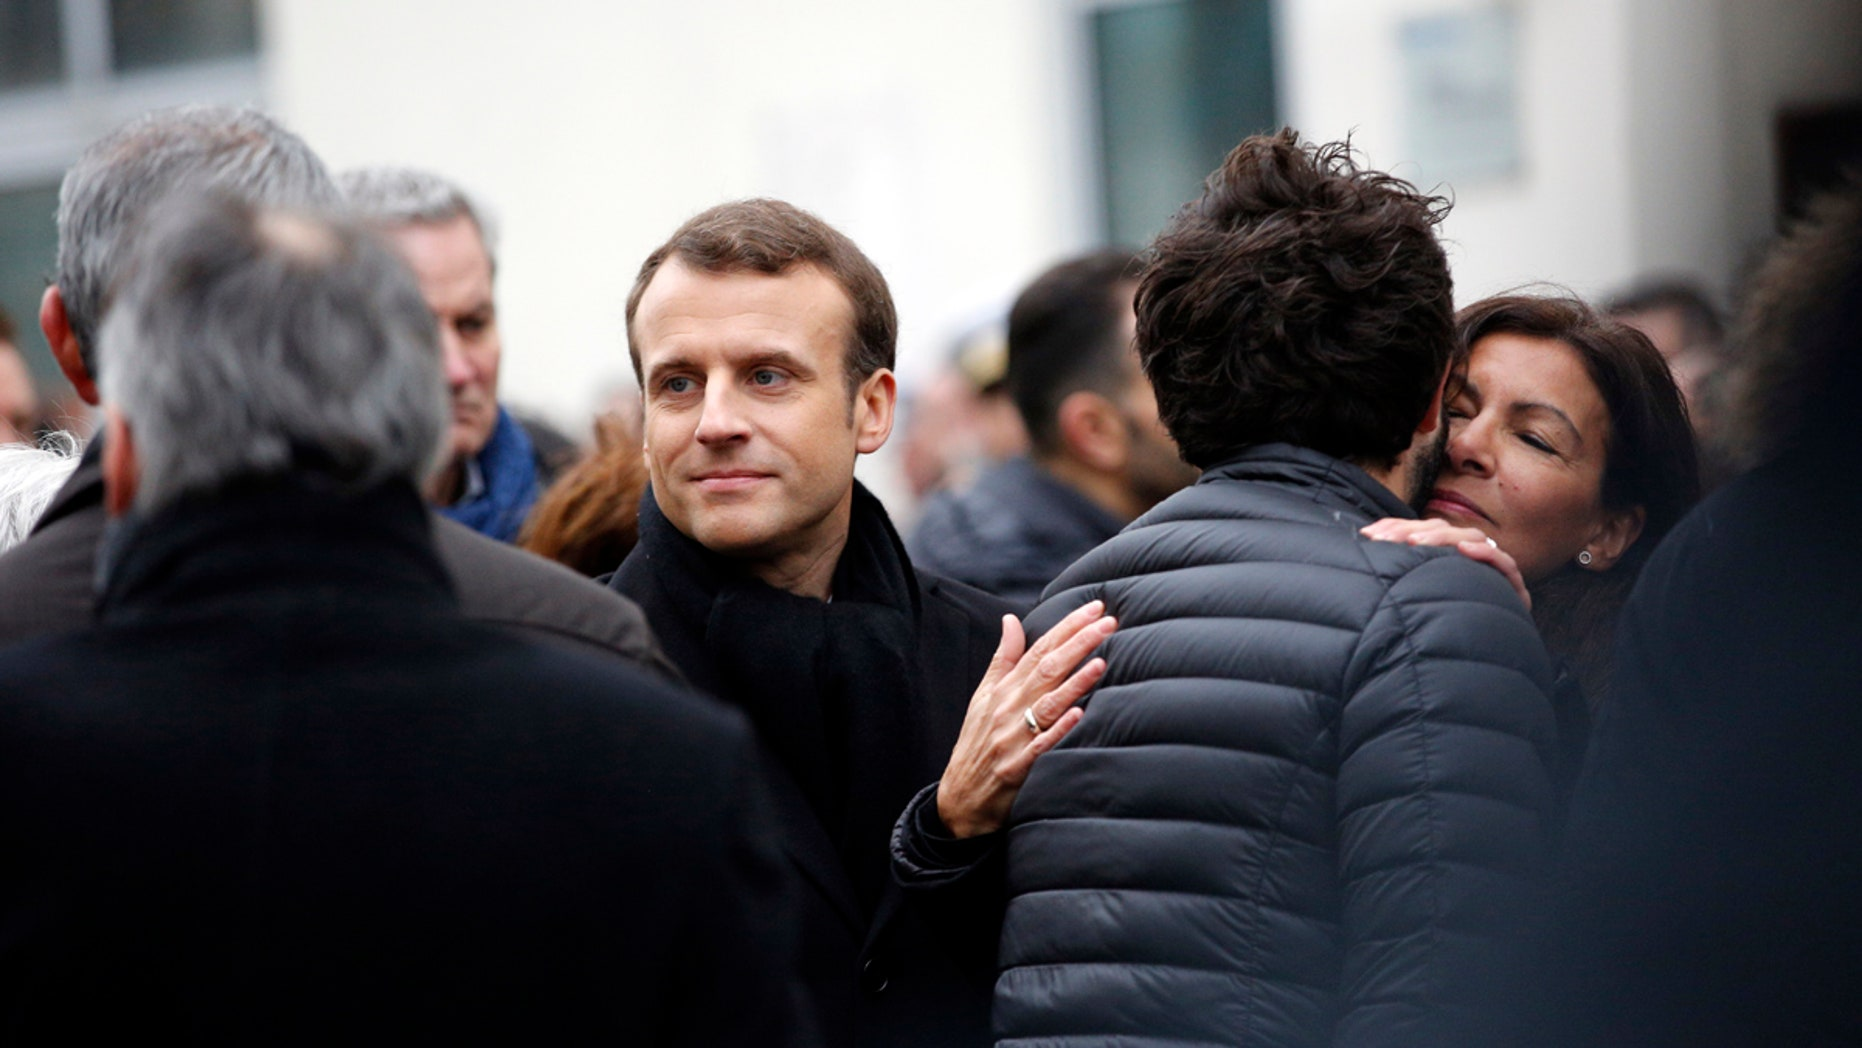 French President Emmanuel Macron, center and Paris mayor Anne Hidalgo speaks to relatives of victims outside the satirical newspaper Charlie Hebdo former office as they mark the third anniversary of the attack, in Paris, Sunday, Jan. 7, 2018.